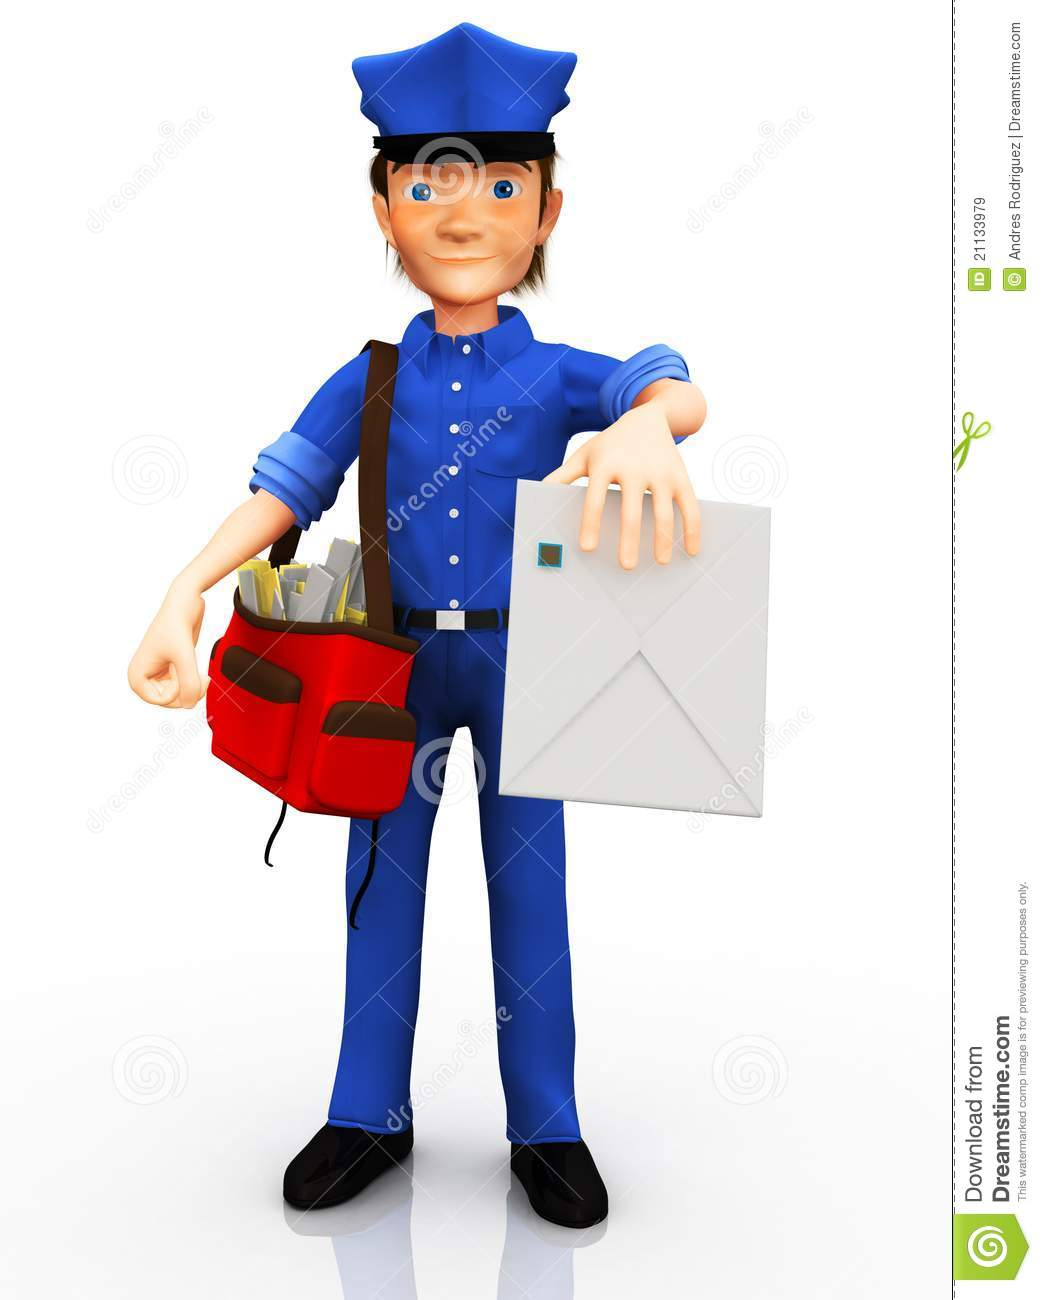 3D Mailman Royalty Free Stock Images - Image: 21133979